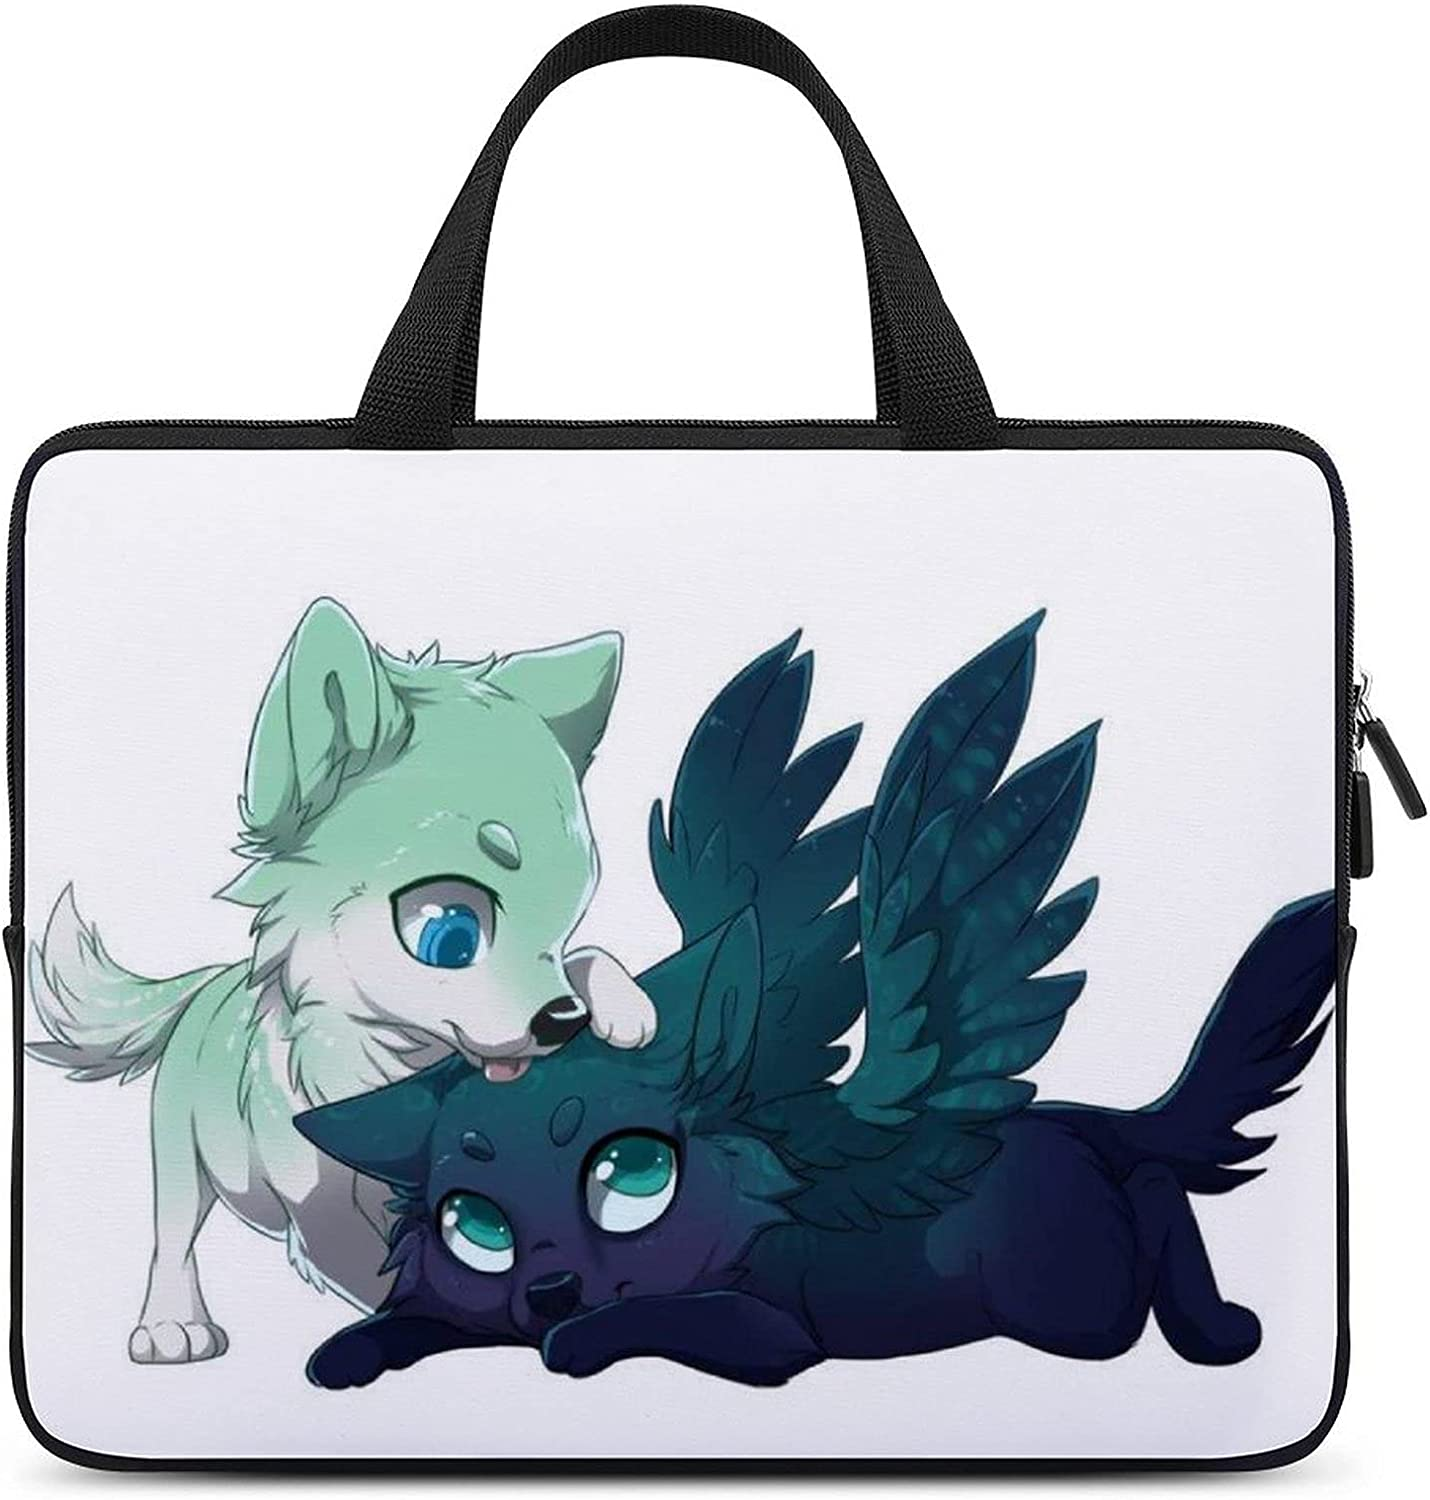 Furry Wolf Laptop Sleeve case Sleeves Suitable for Asus/Dell/Lenovo/HP/Samsung/Sony/Toshiba/Apple 17inch